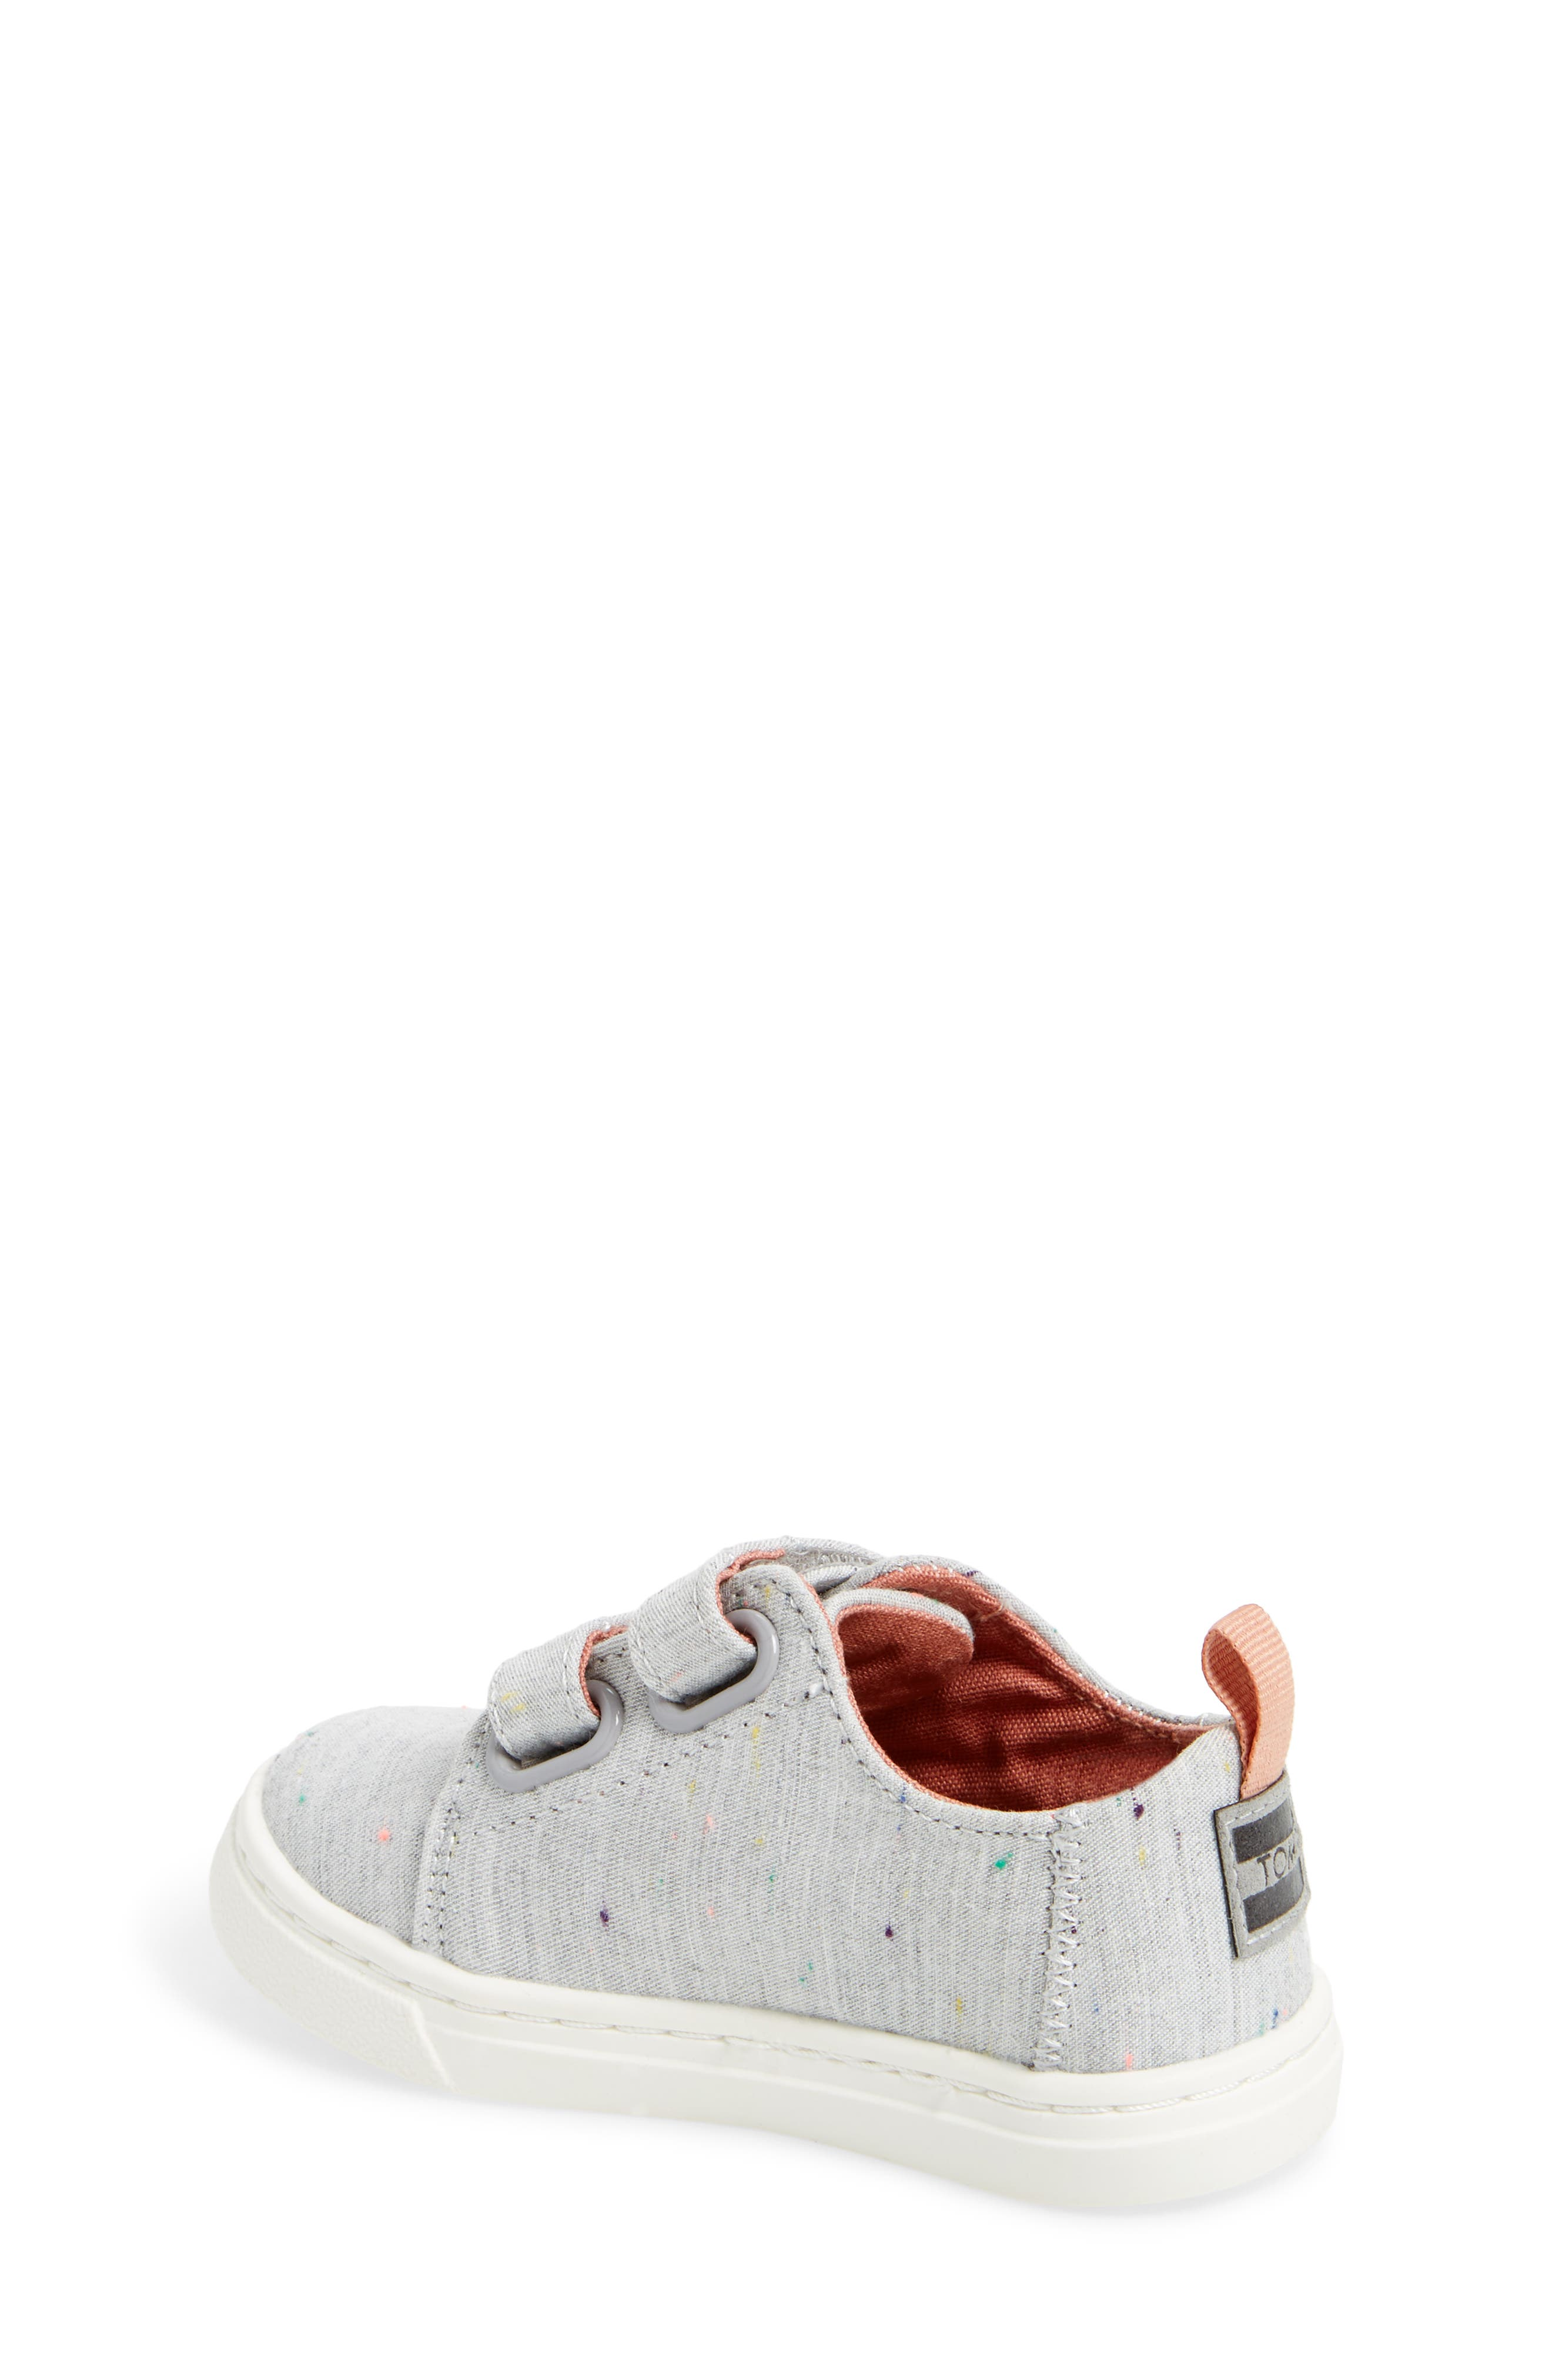 everything source shipping by s run floral photo spring shoe baby on see shoes kai cribs products cruz free toms crib